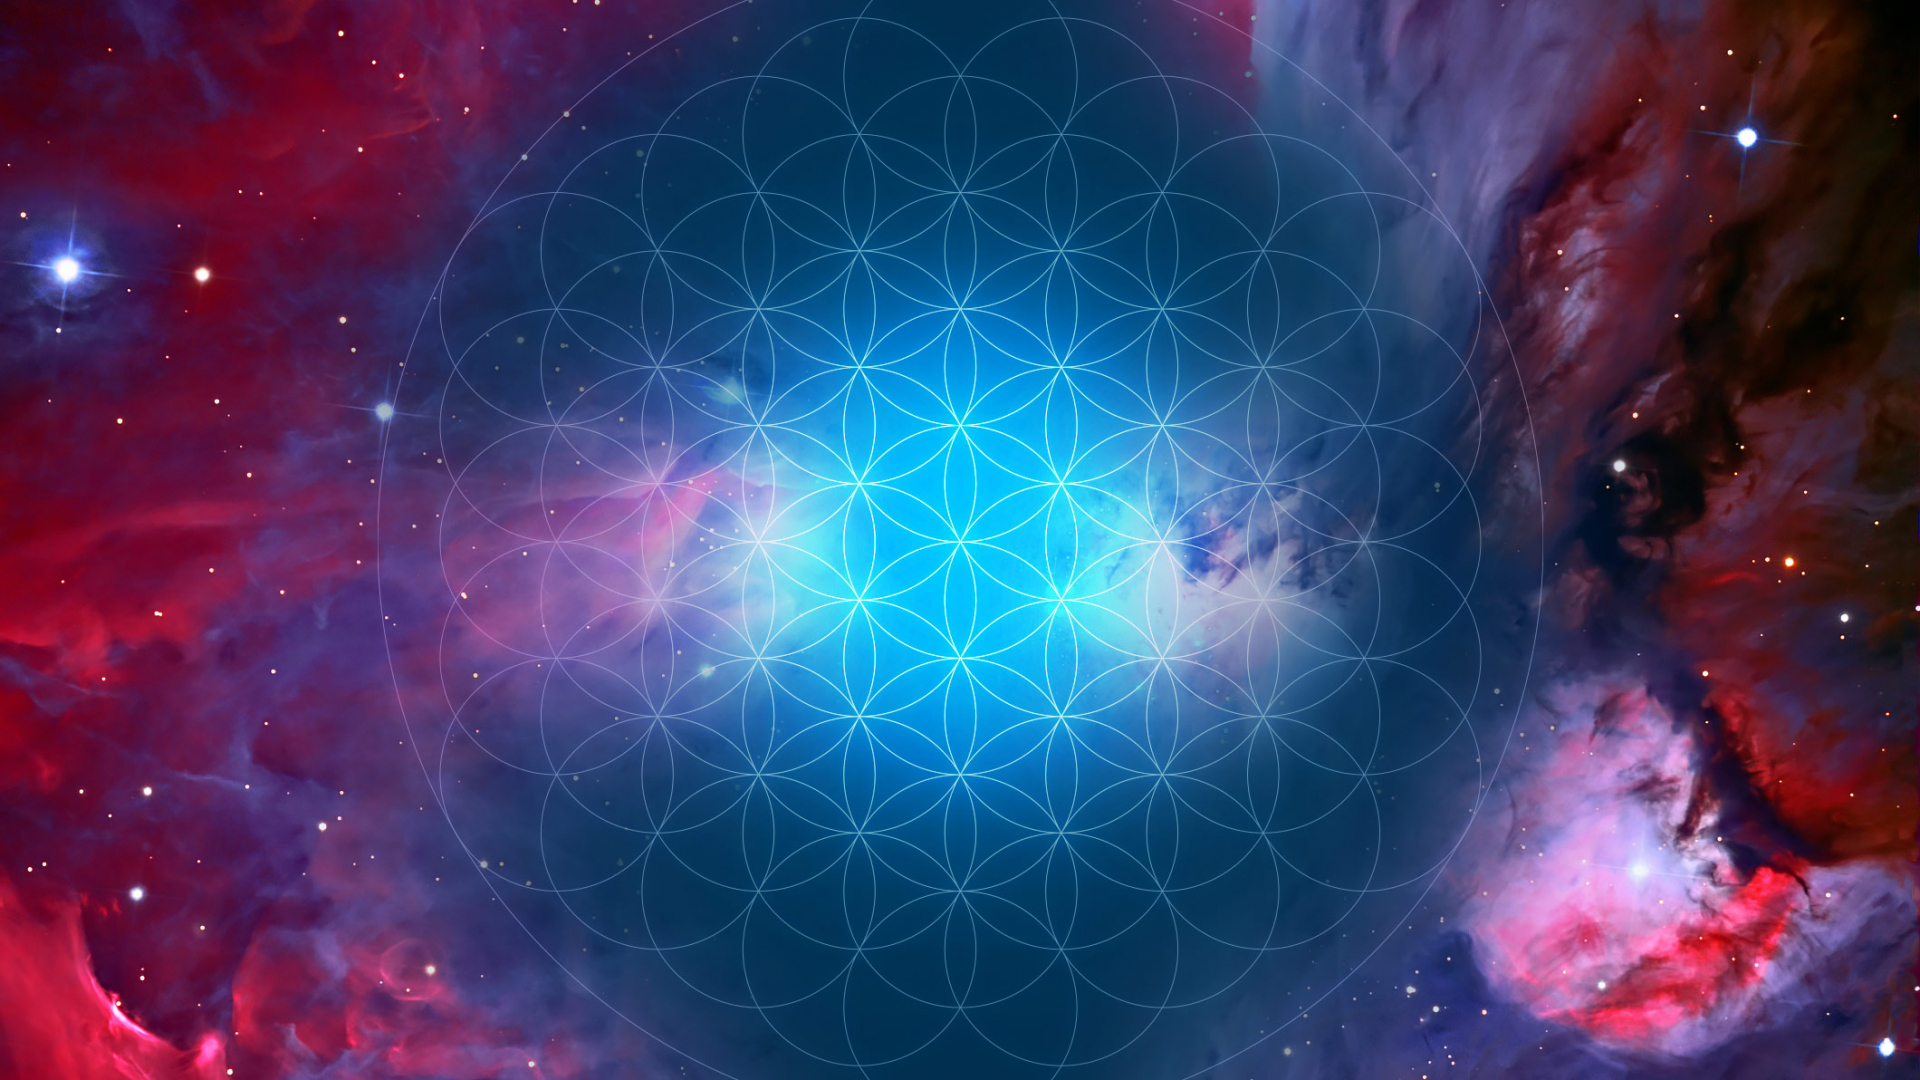 Free Download Flower Of Life Youtube Channel Artjpg 2120x1192